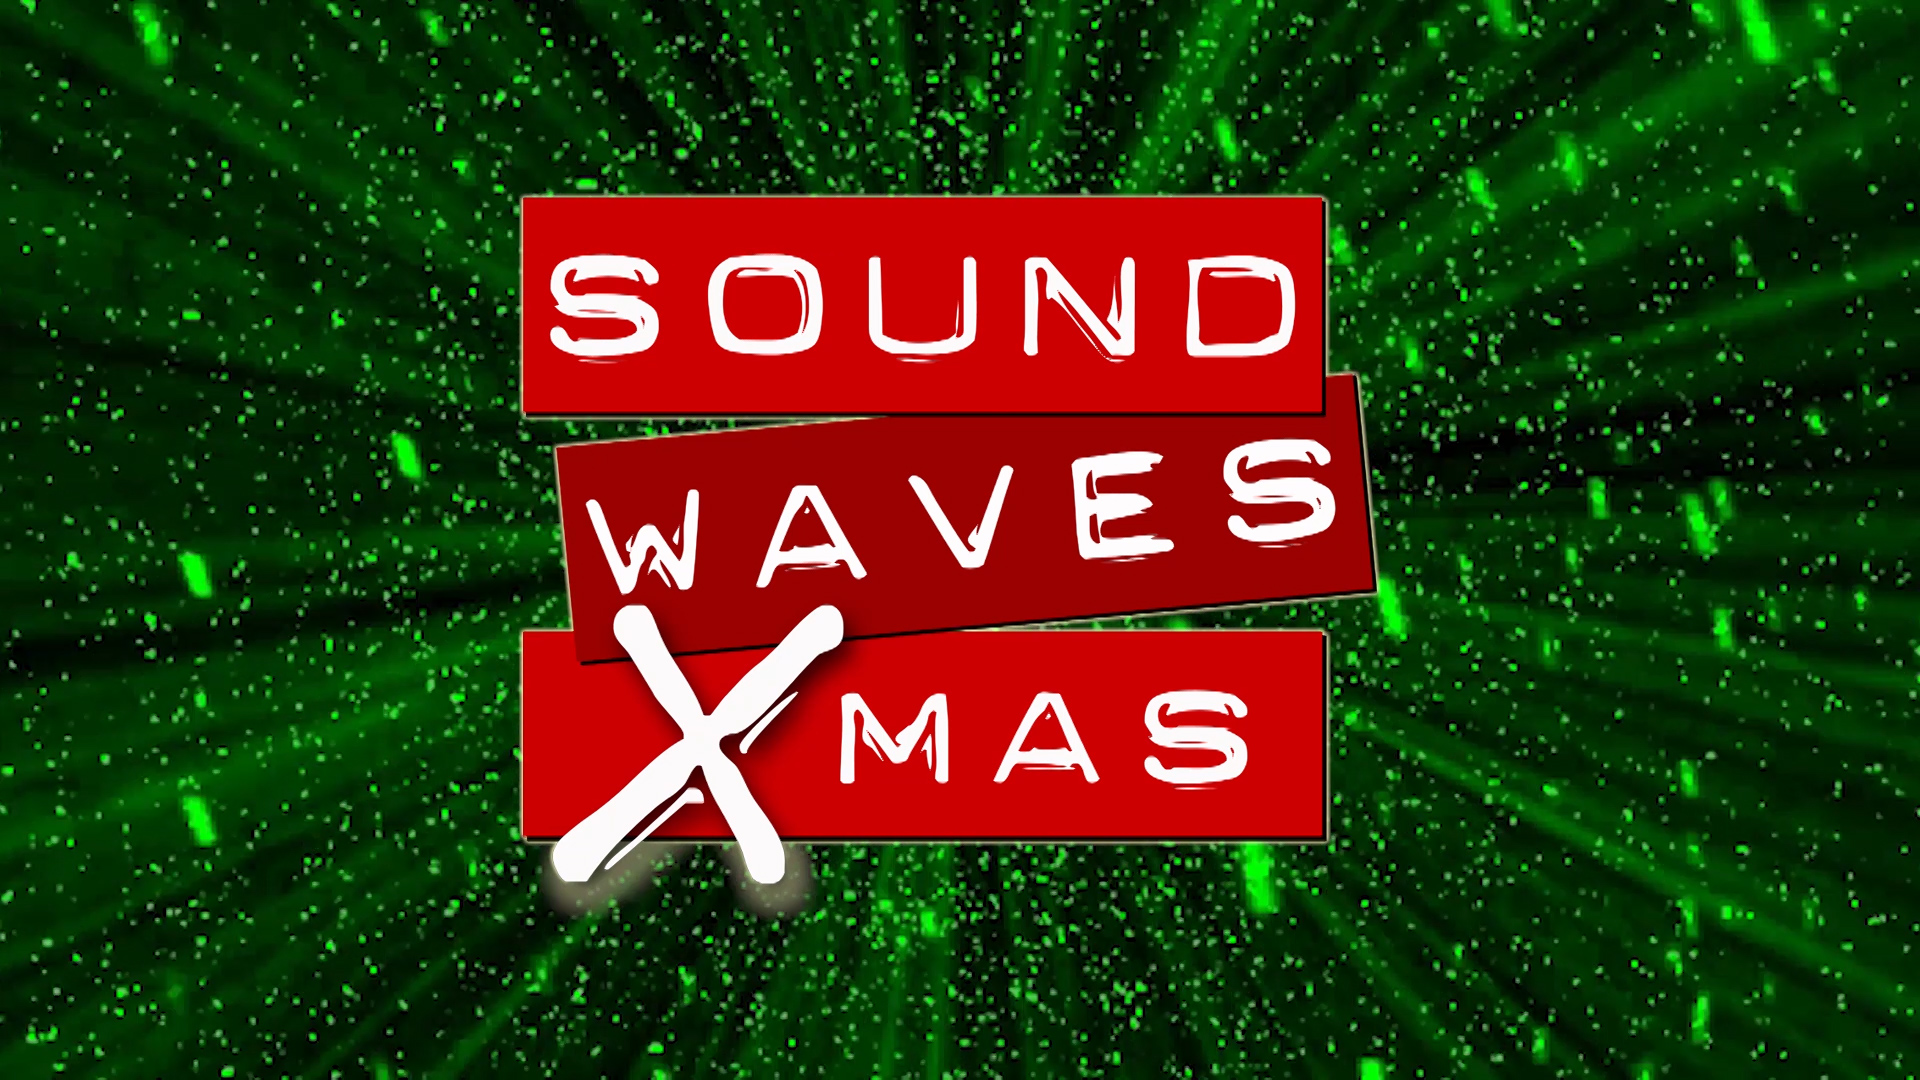 SOUNDWAVES XMAS 2015 – WATCH THE ENTIRE SHOW